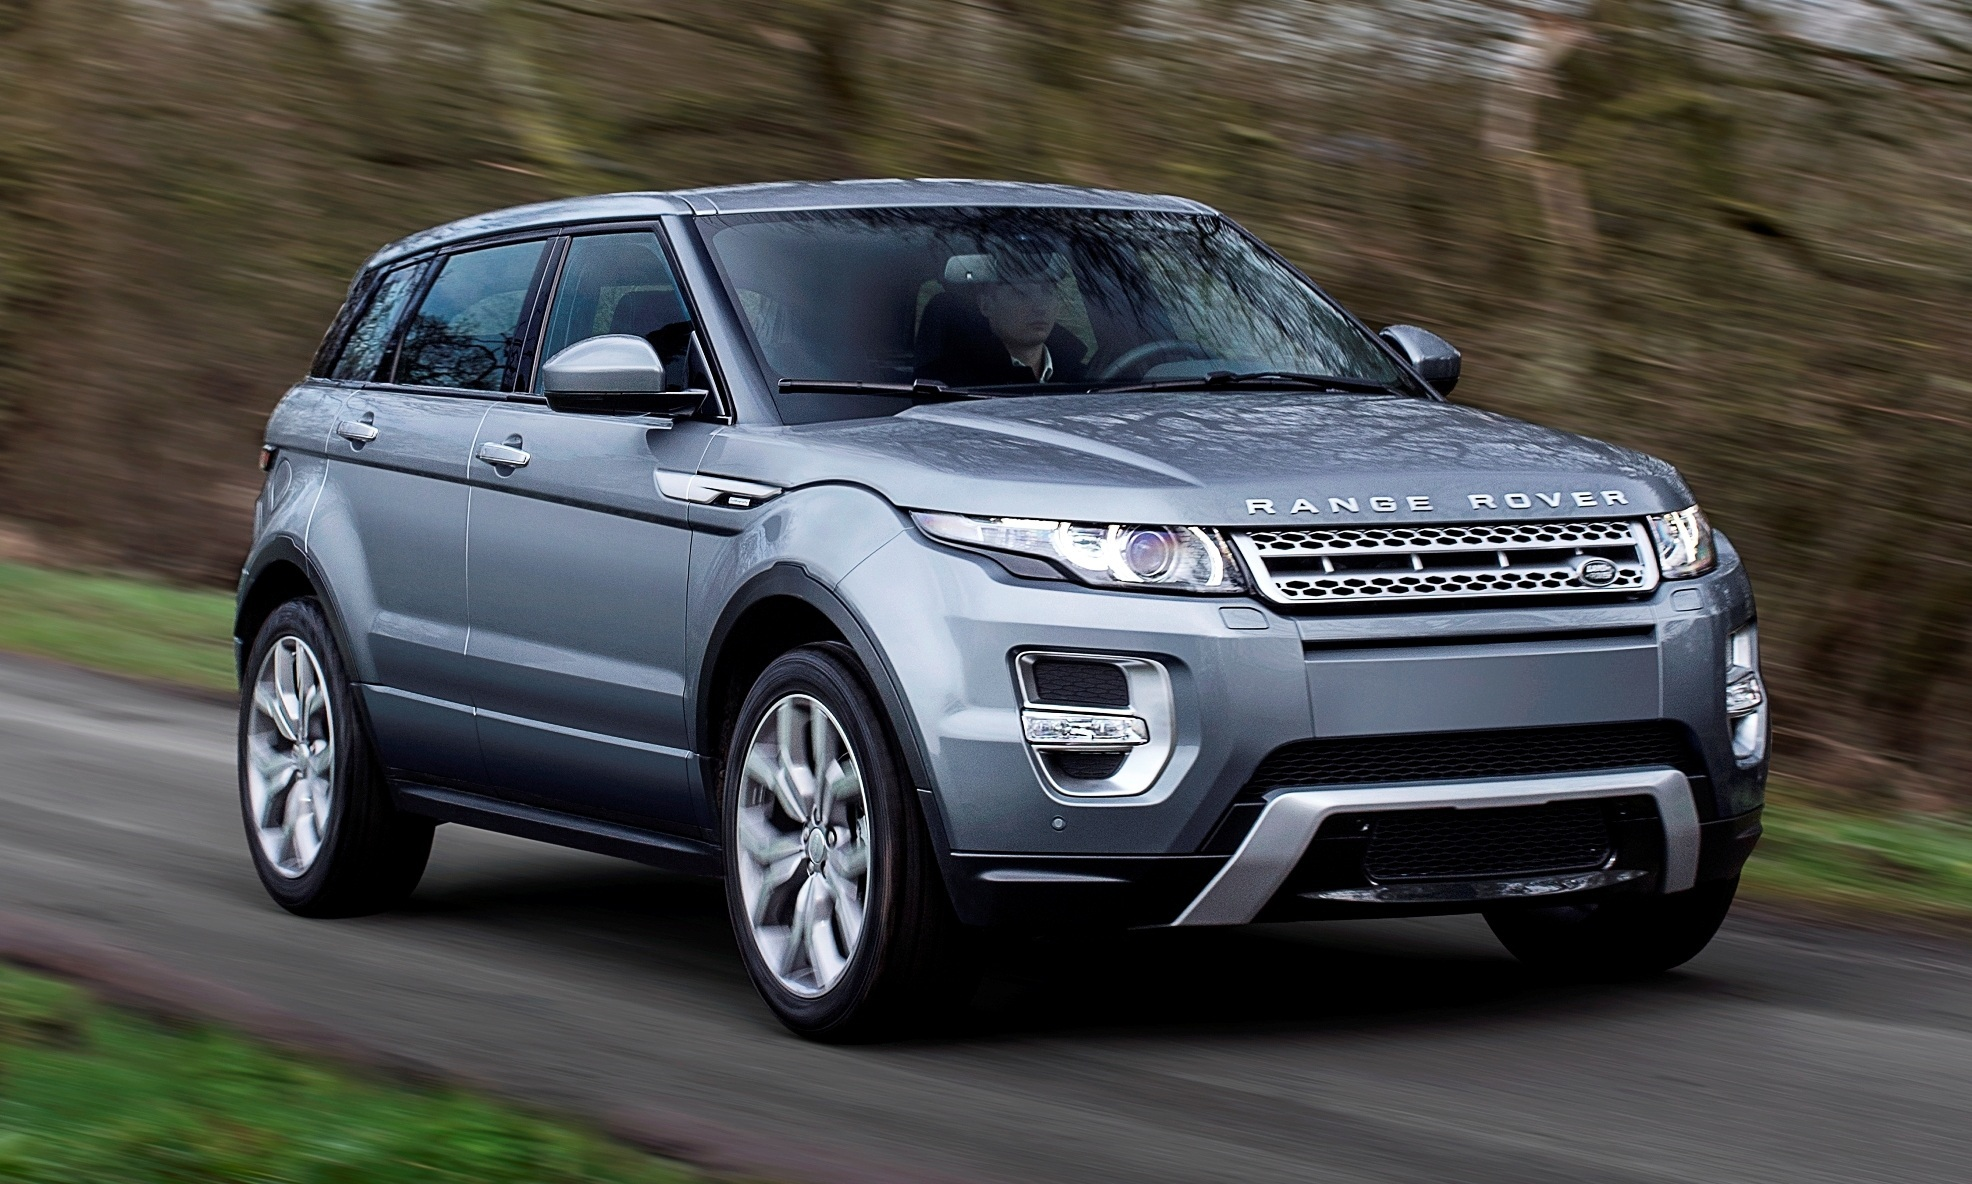 2015 range rover evoque gains 9 speed auto refreshed info. Black Bedroom Furniture Sets. Home Design Ideas